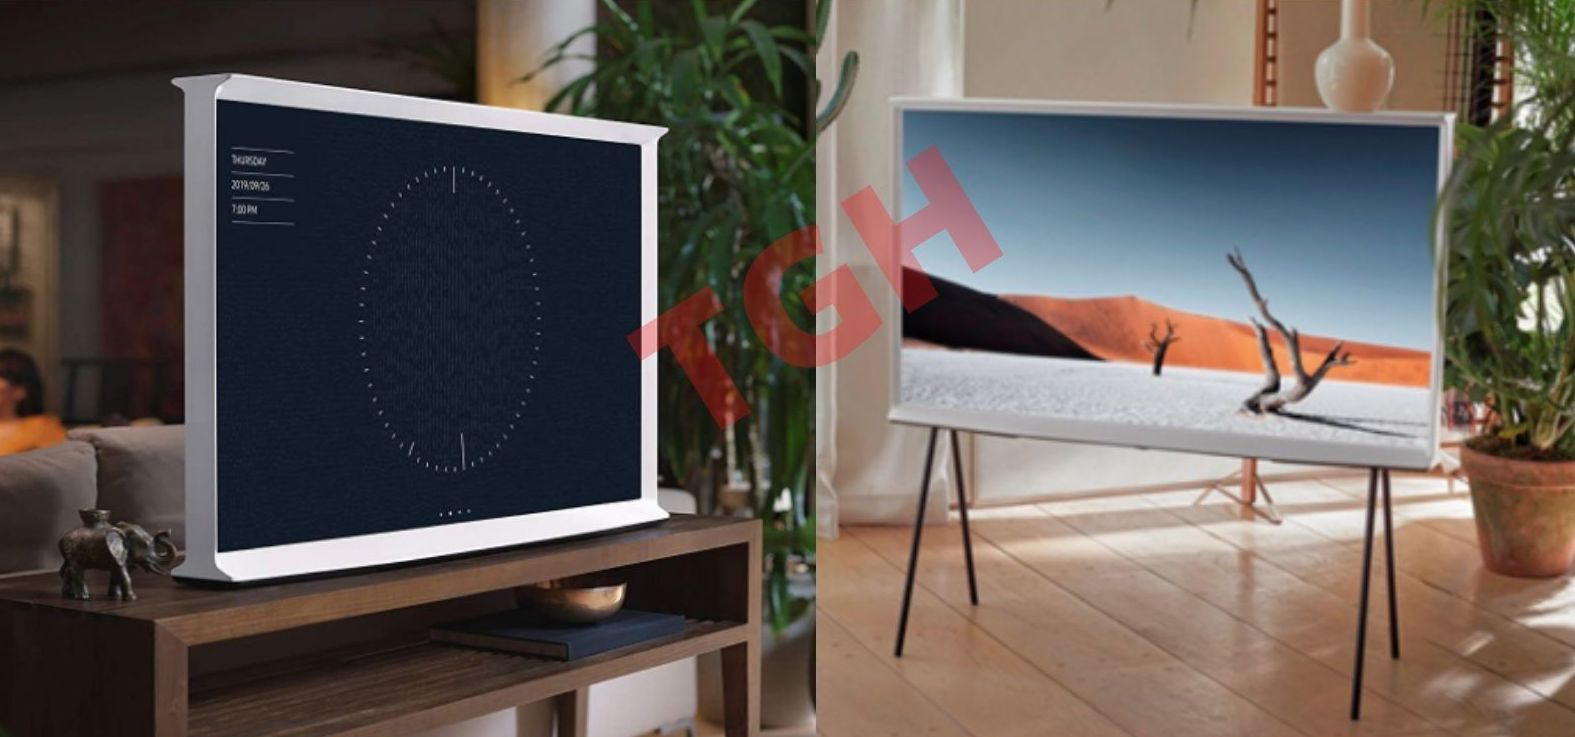 Samsung The Serif Series Is The Best 4k Tv Launched In India